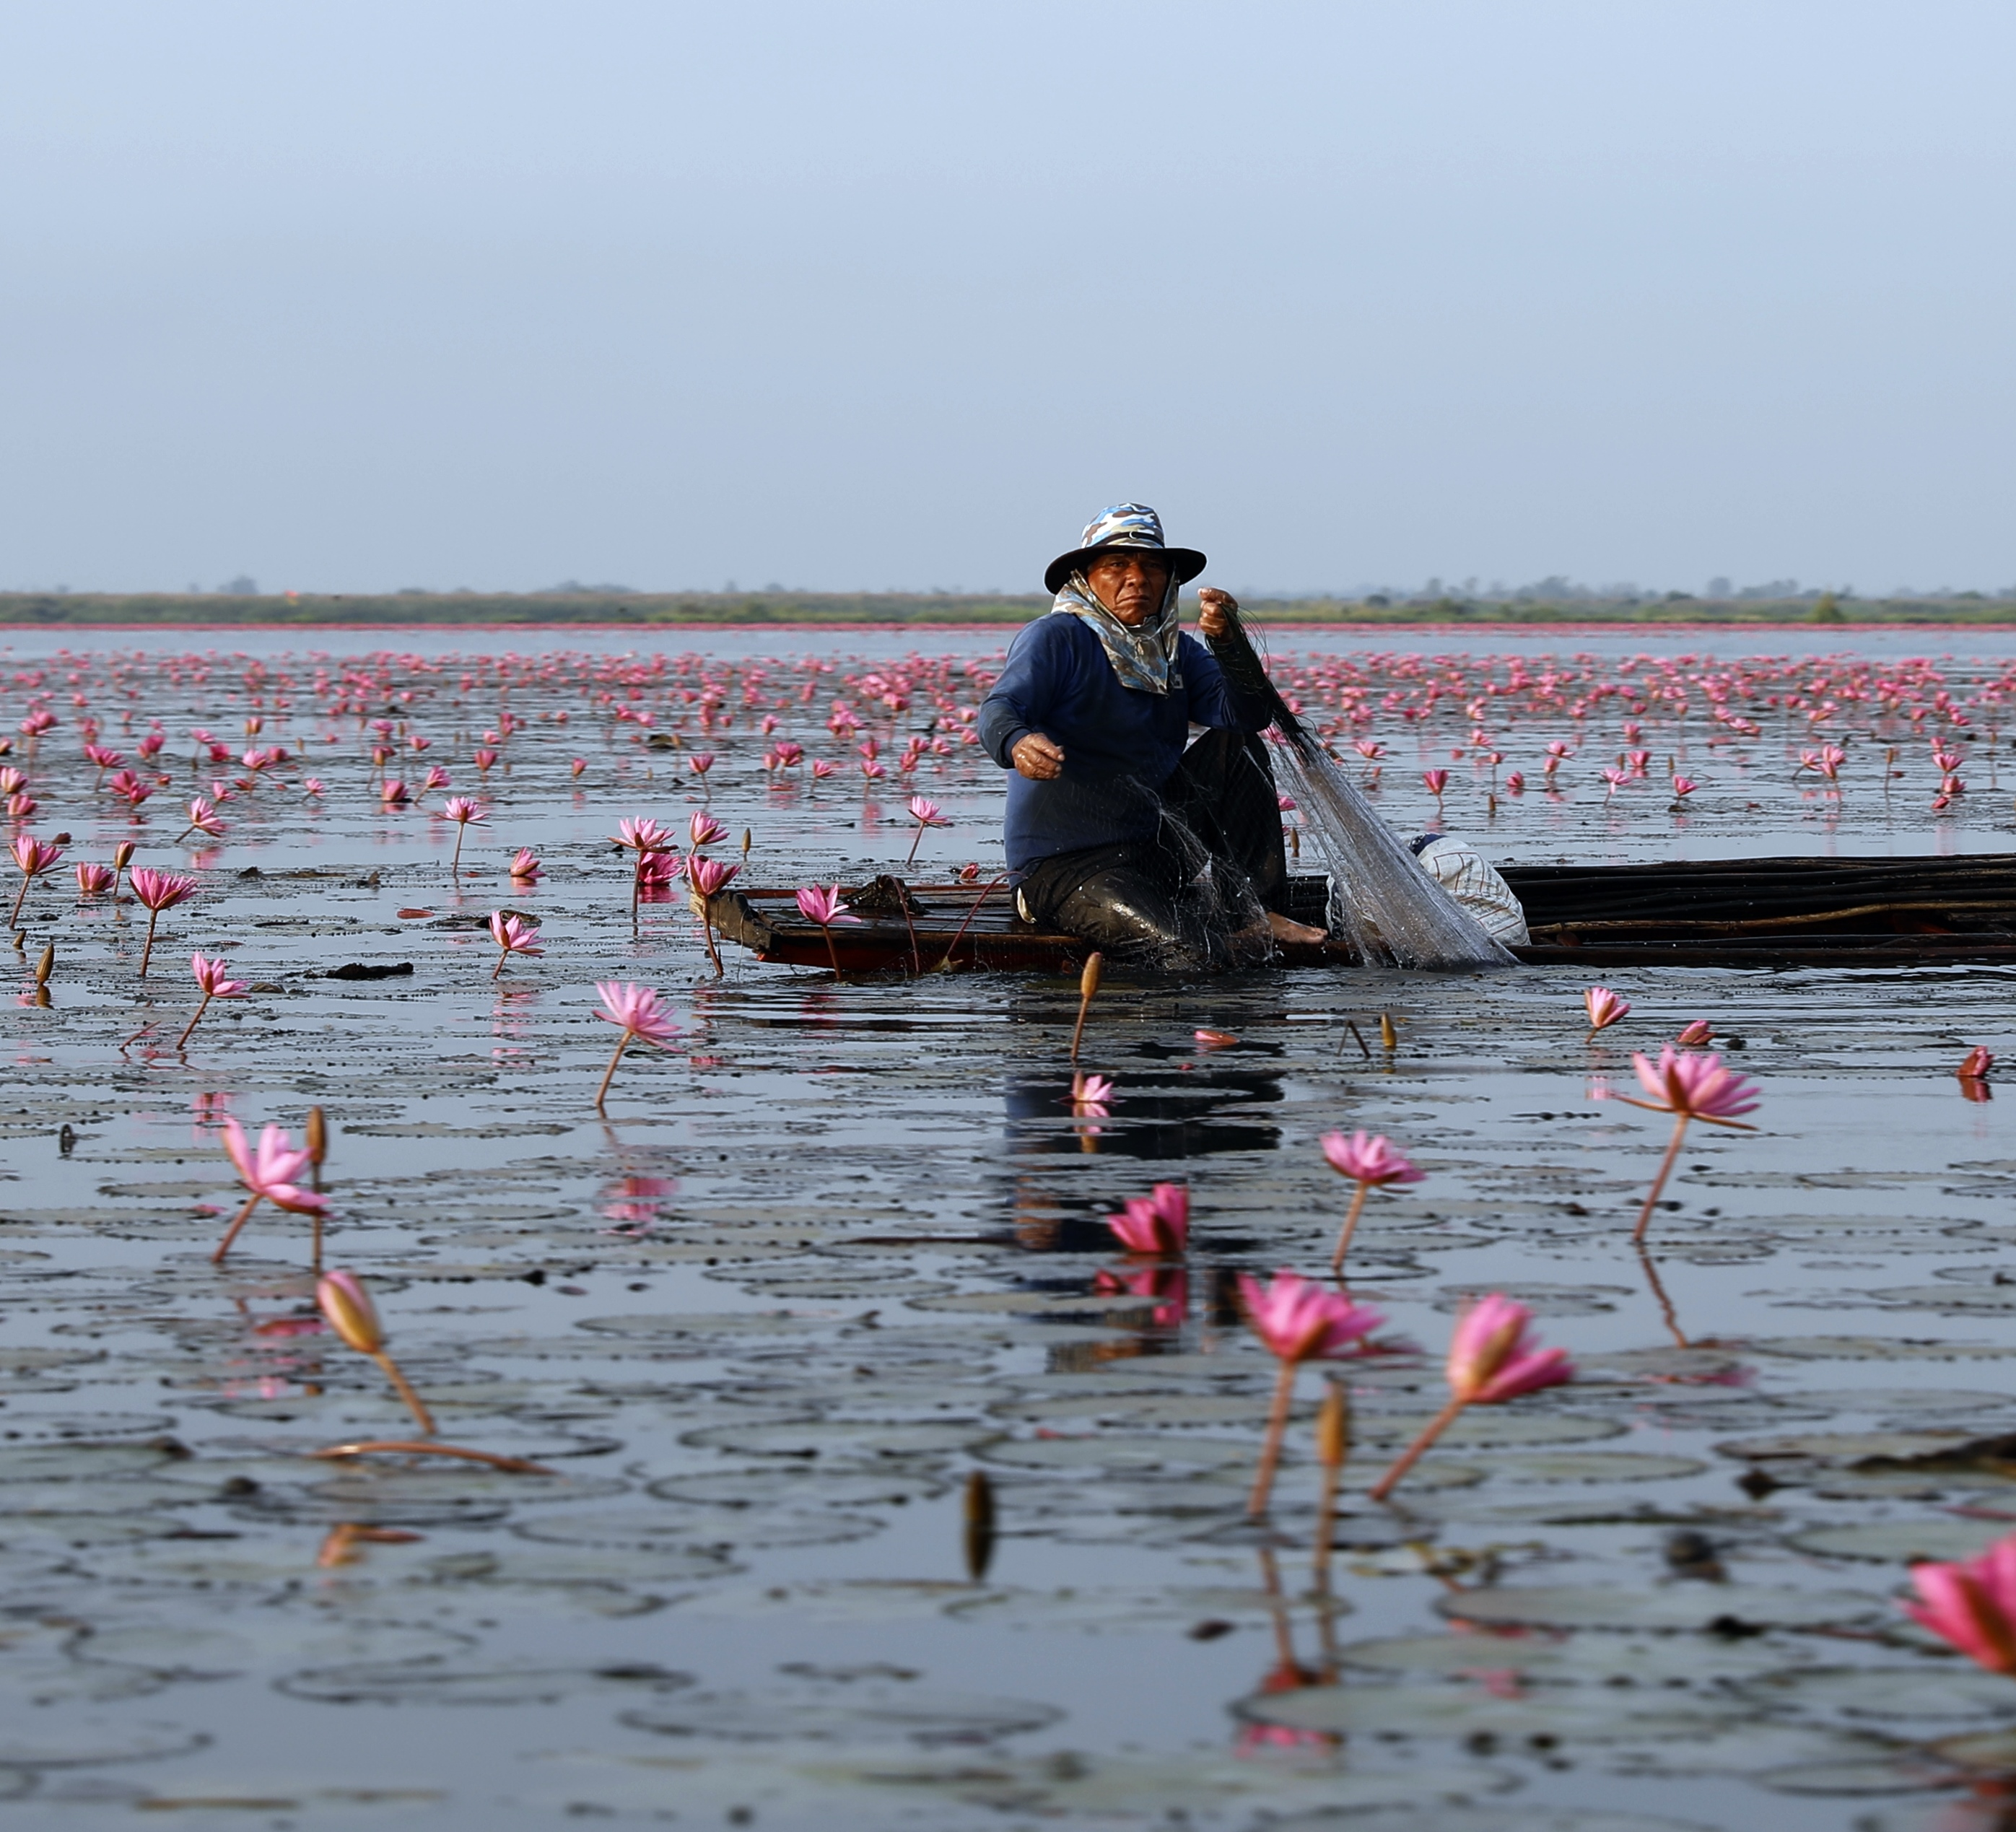 Fisherman on the Red Lotus Sea